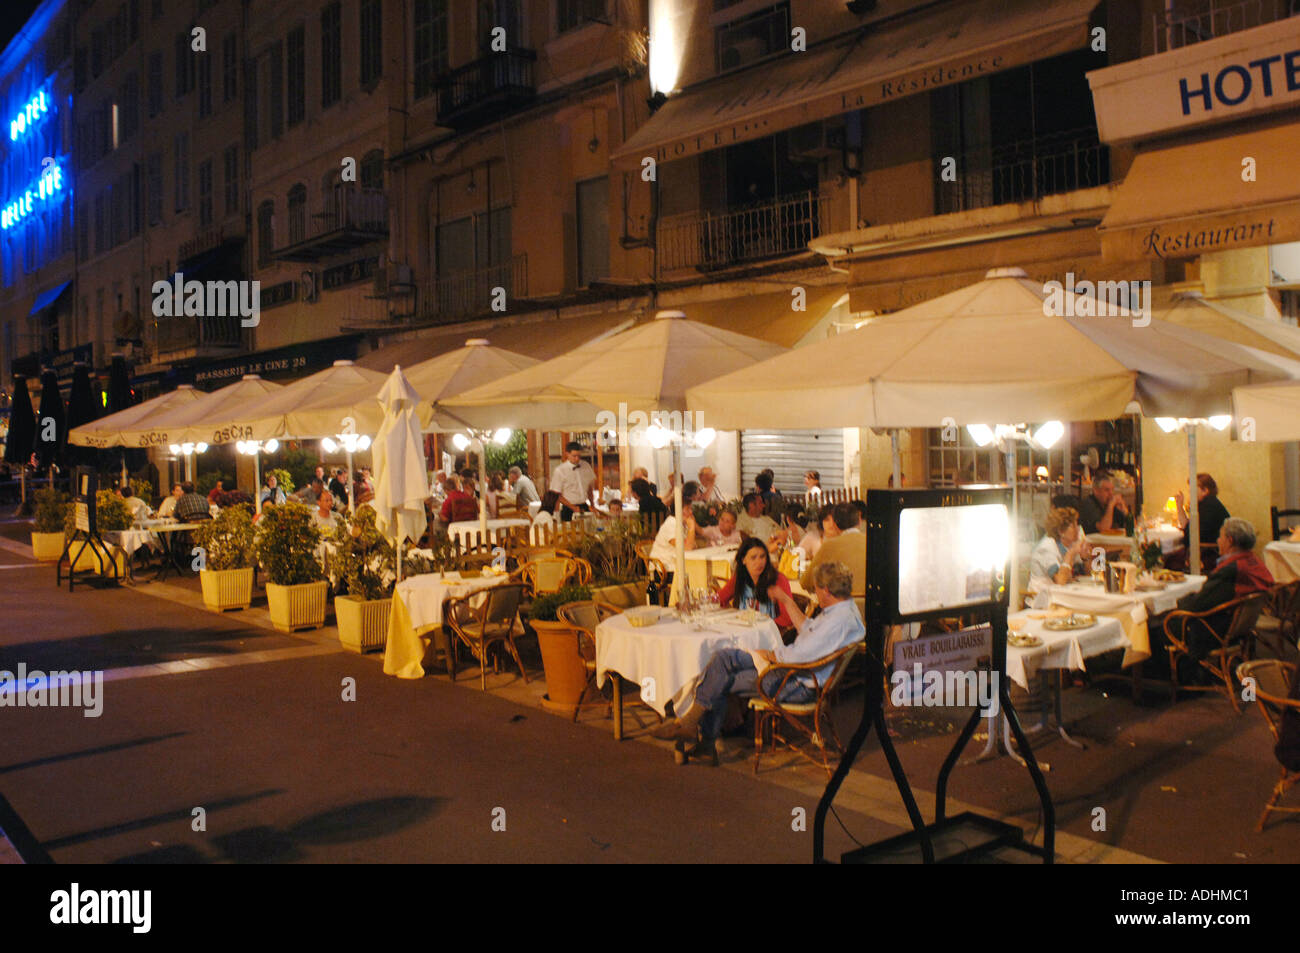 France marseille le vieux port the old port outdoor dining very stock photo 4382912 alamy - Restaurant le vieux port marseille ...